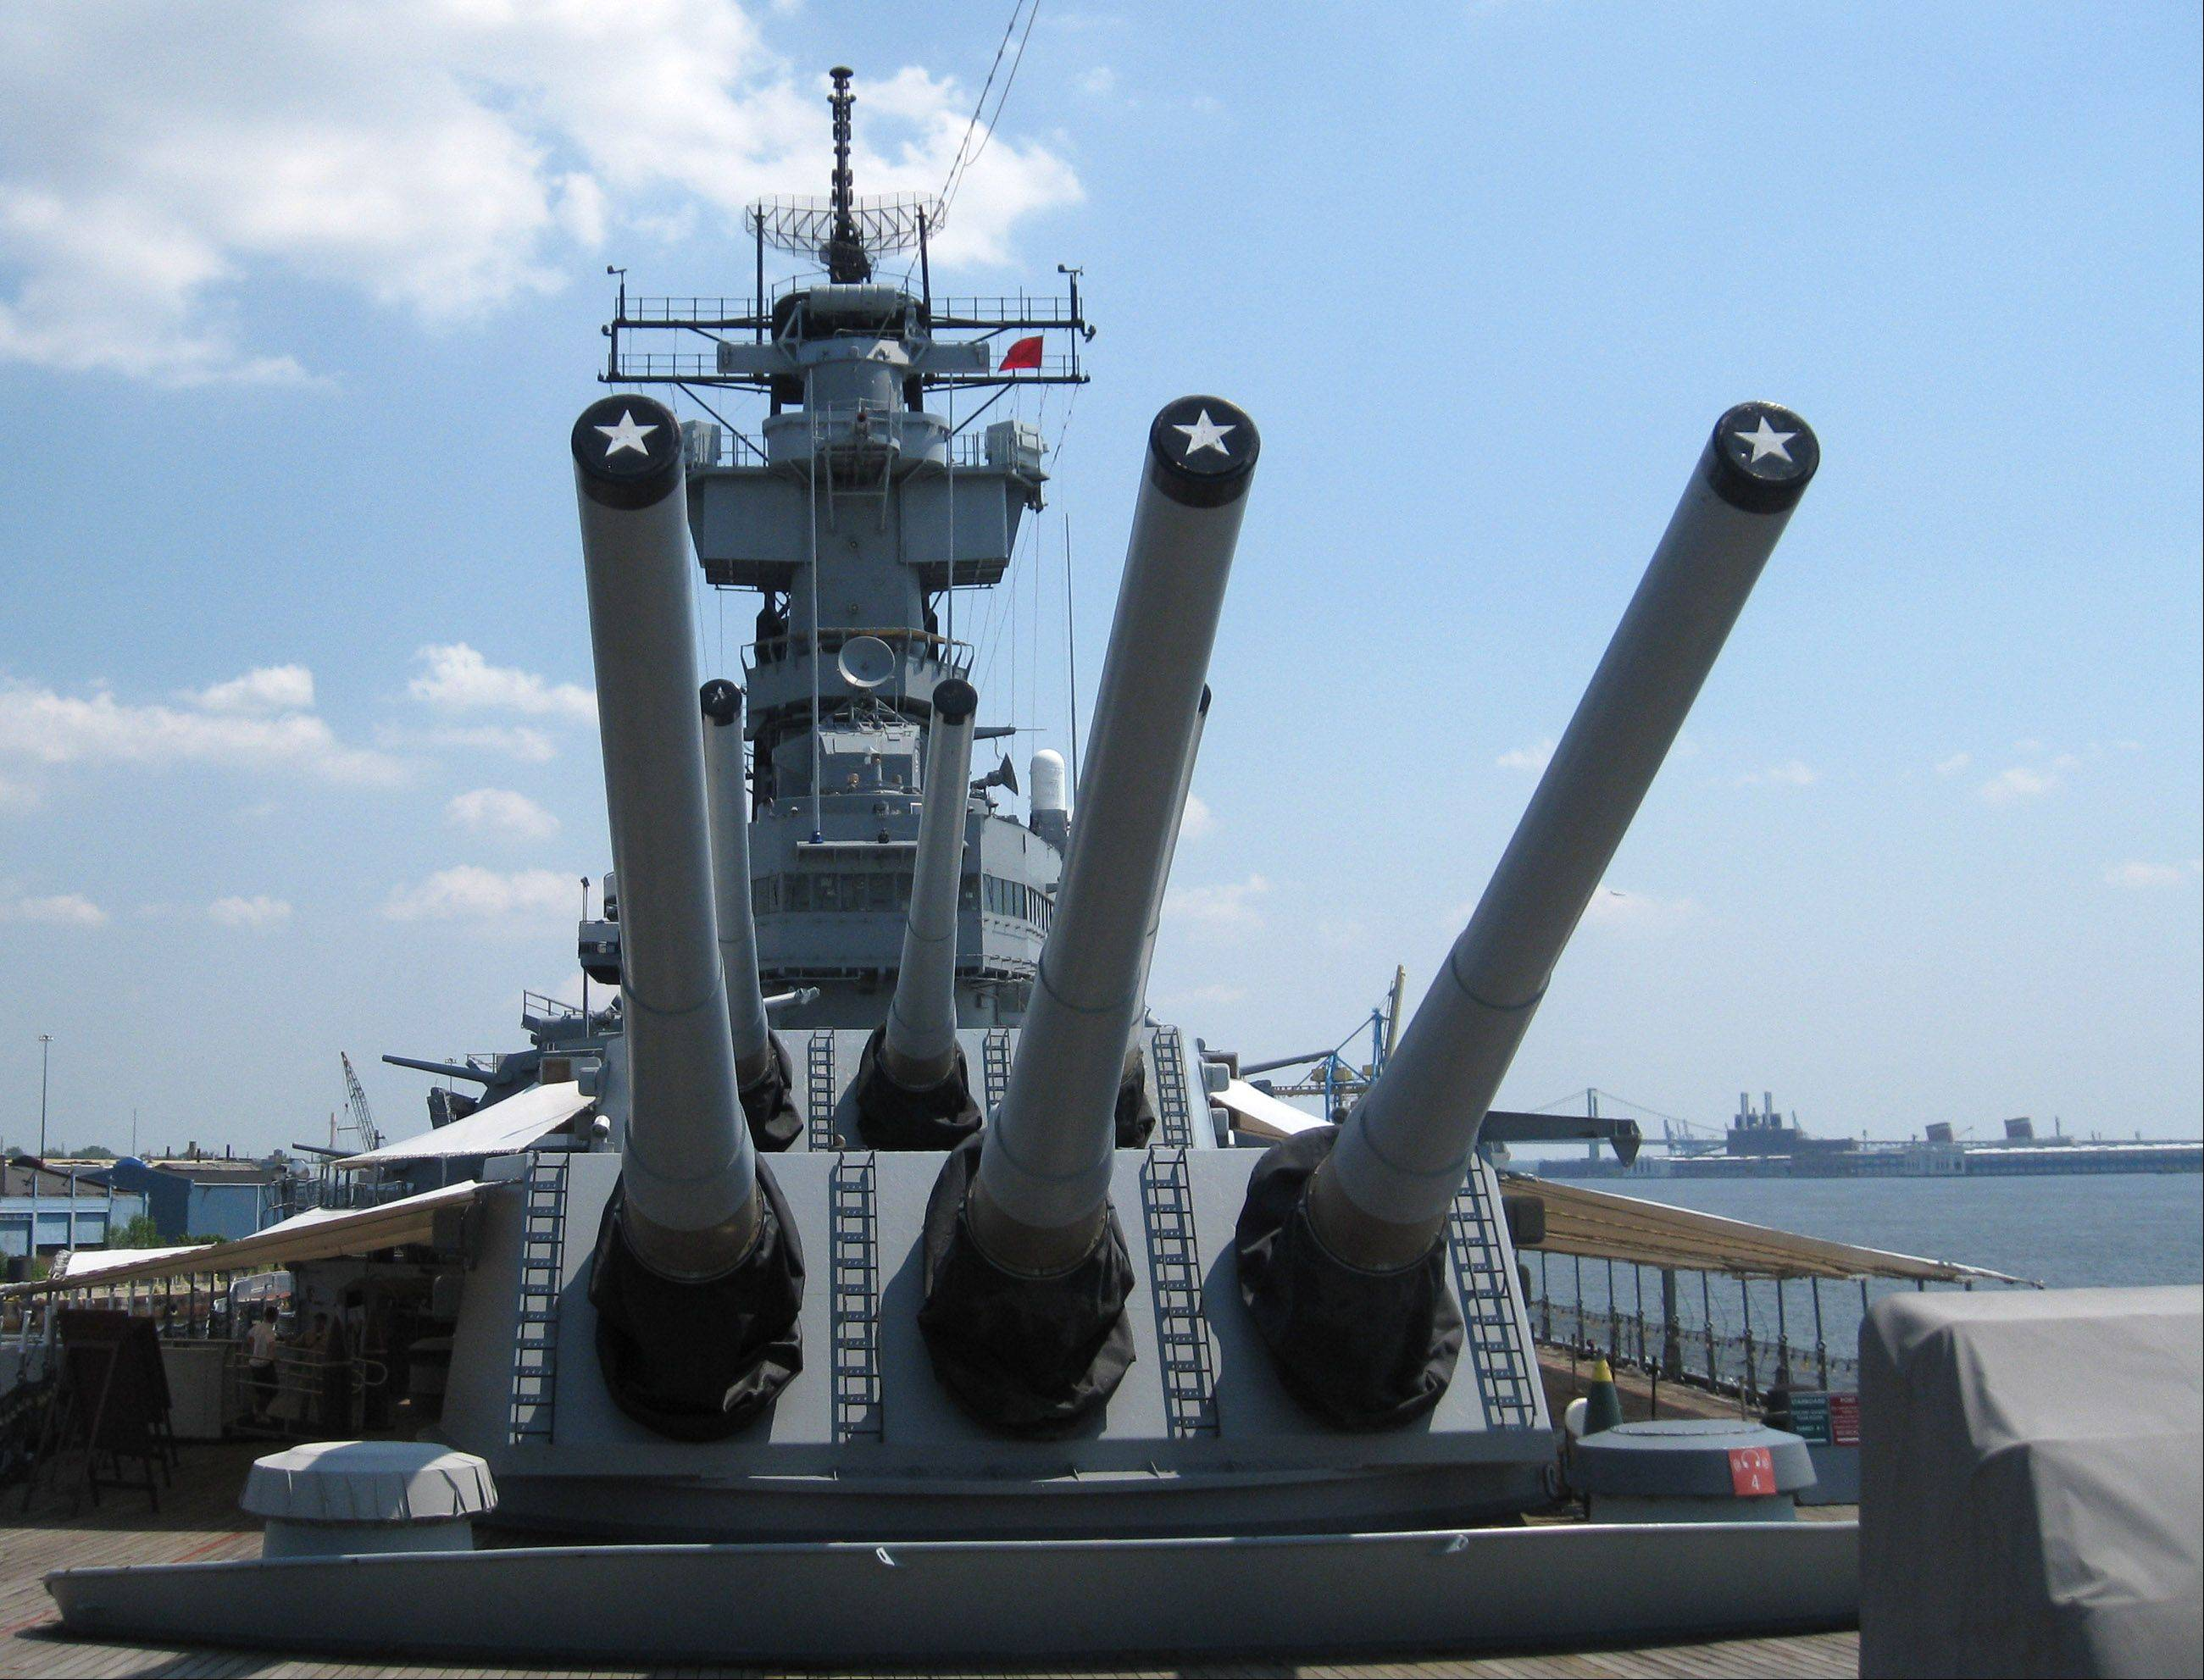 This is the battleship USS New Jersey, which is on display in the Delaware River in Philadelphia.